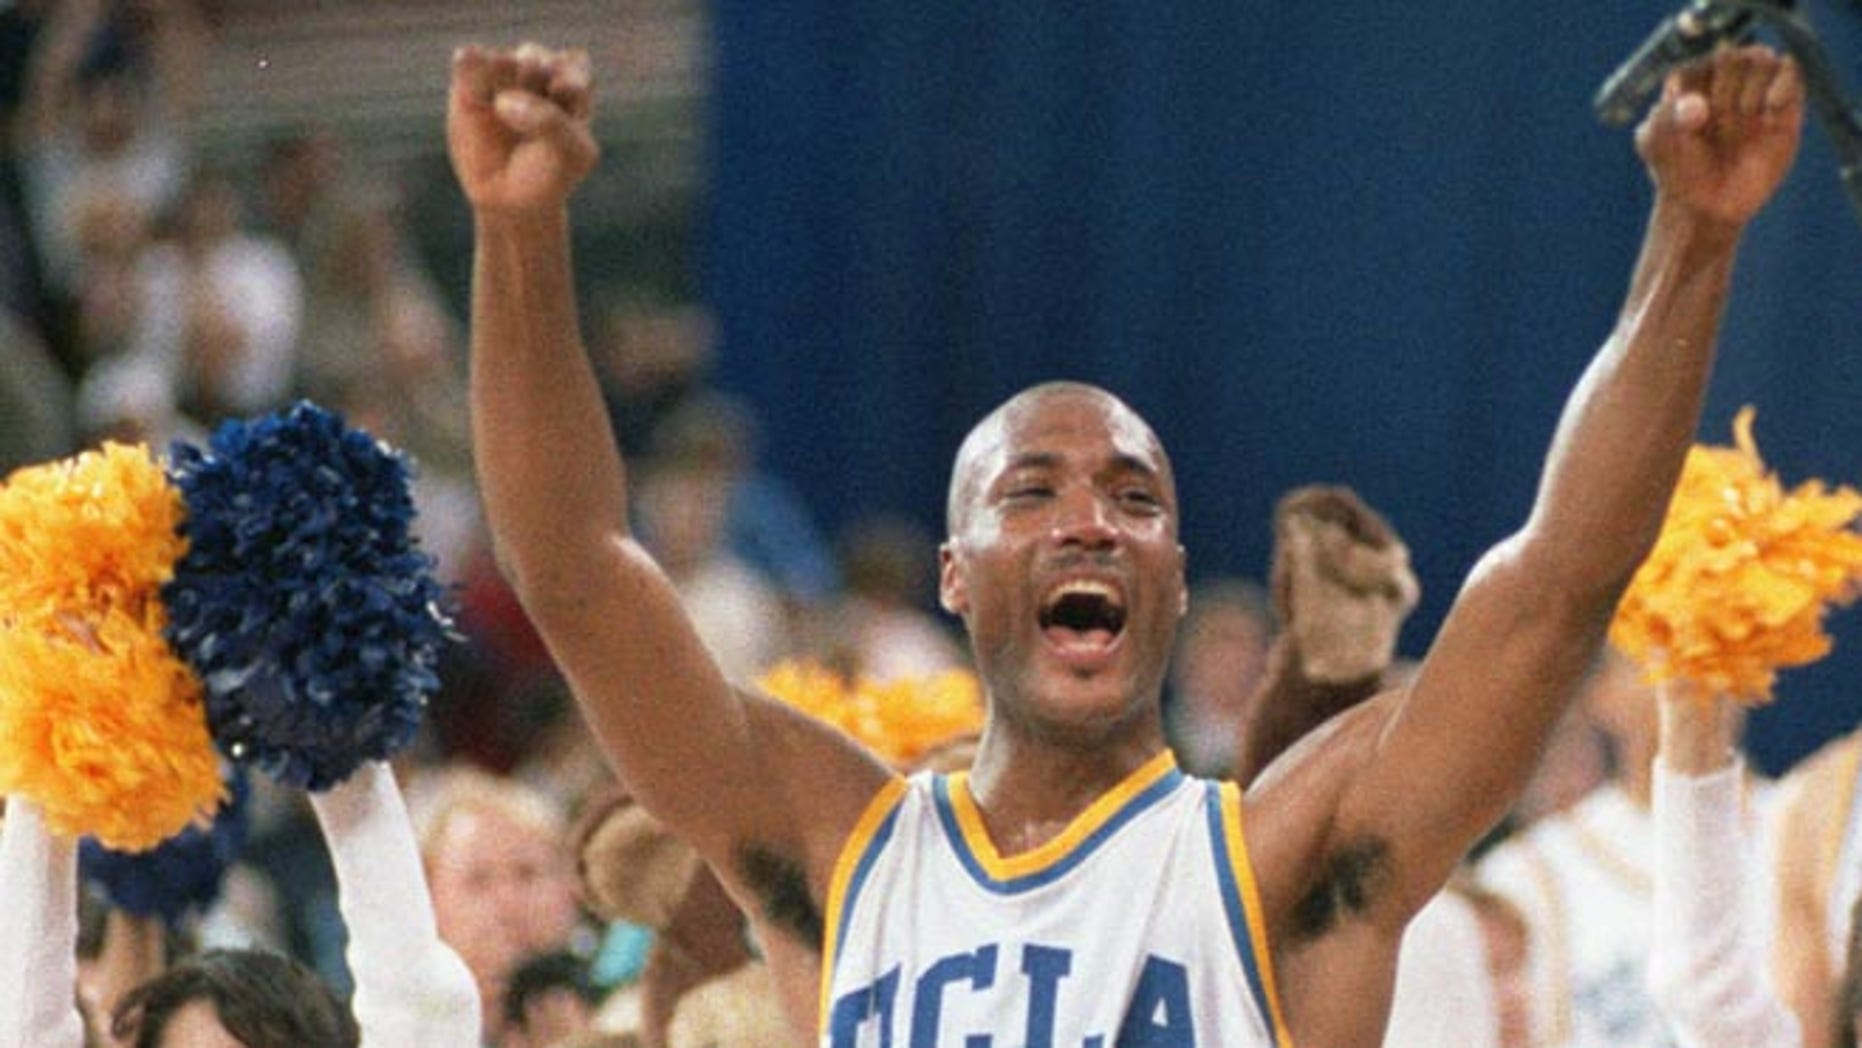 April 3, 1995: UCLA's Ed O'Bannon celebrates after his team won the  championship NCAA game against Arkansas in Seattle.